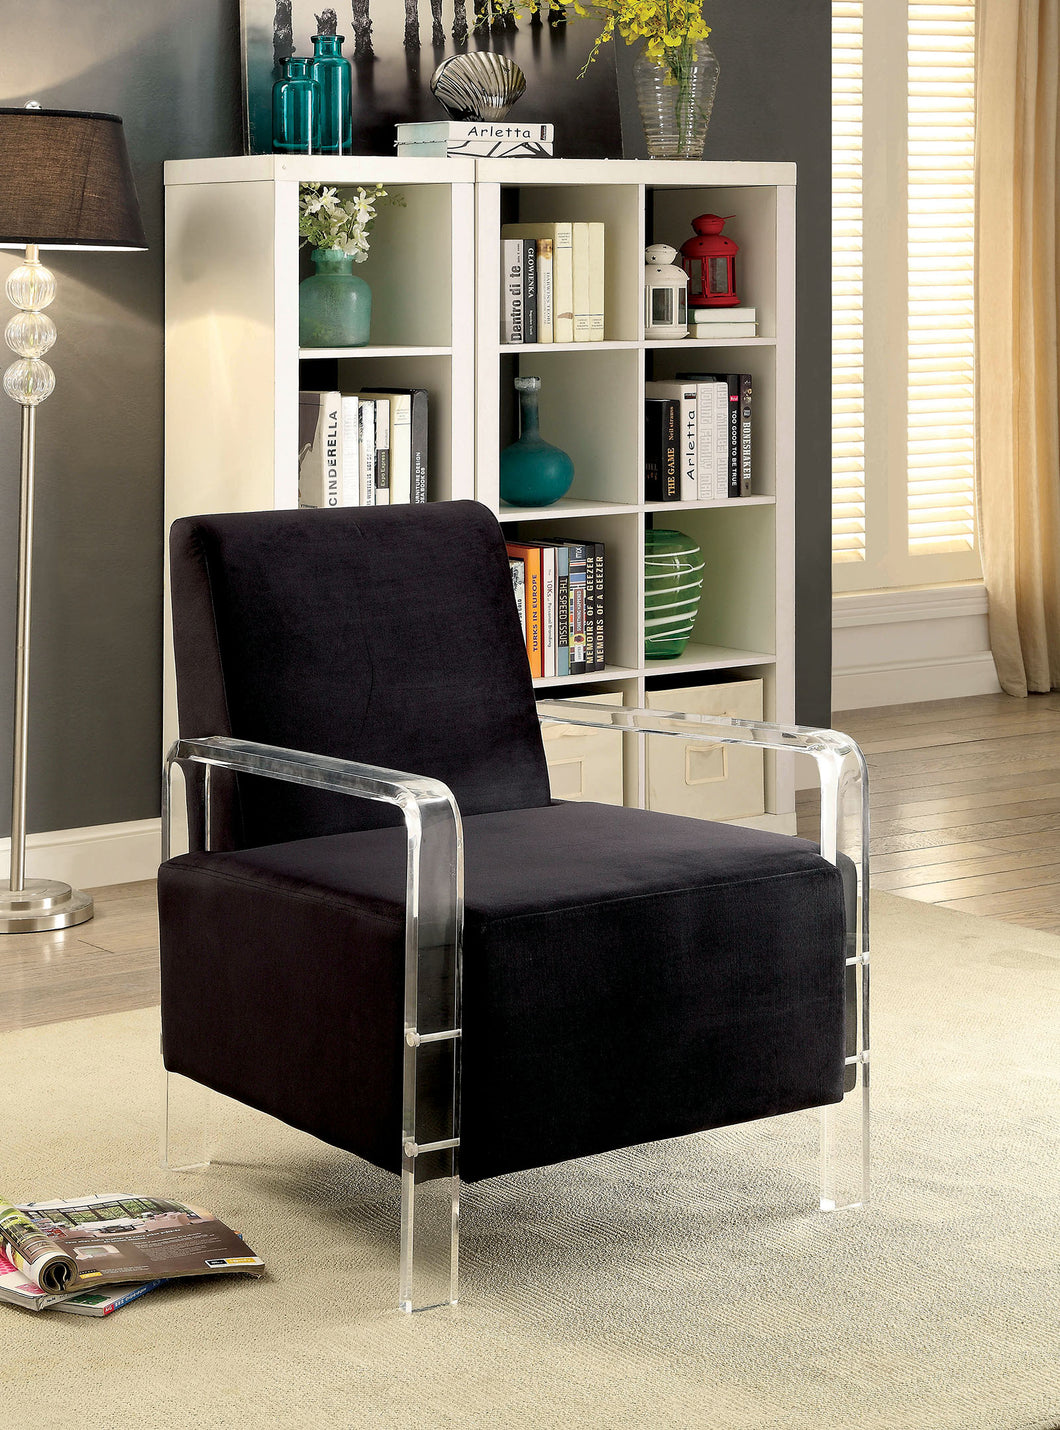 CM-AC6187BK Accent Chair - Shelia Black Finish Flannelette Fabric Modern Style Accent Chair